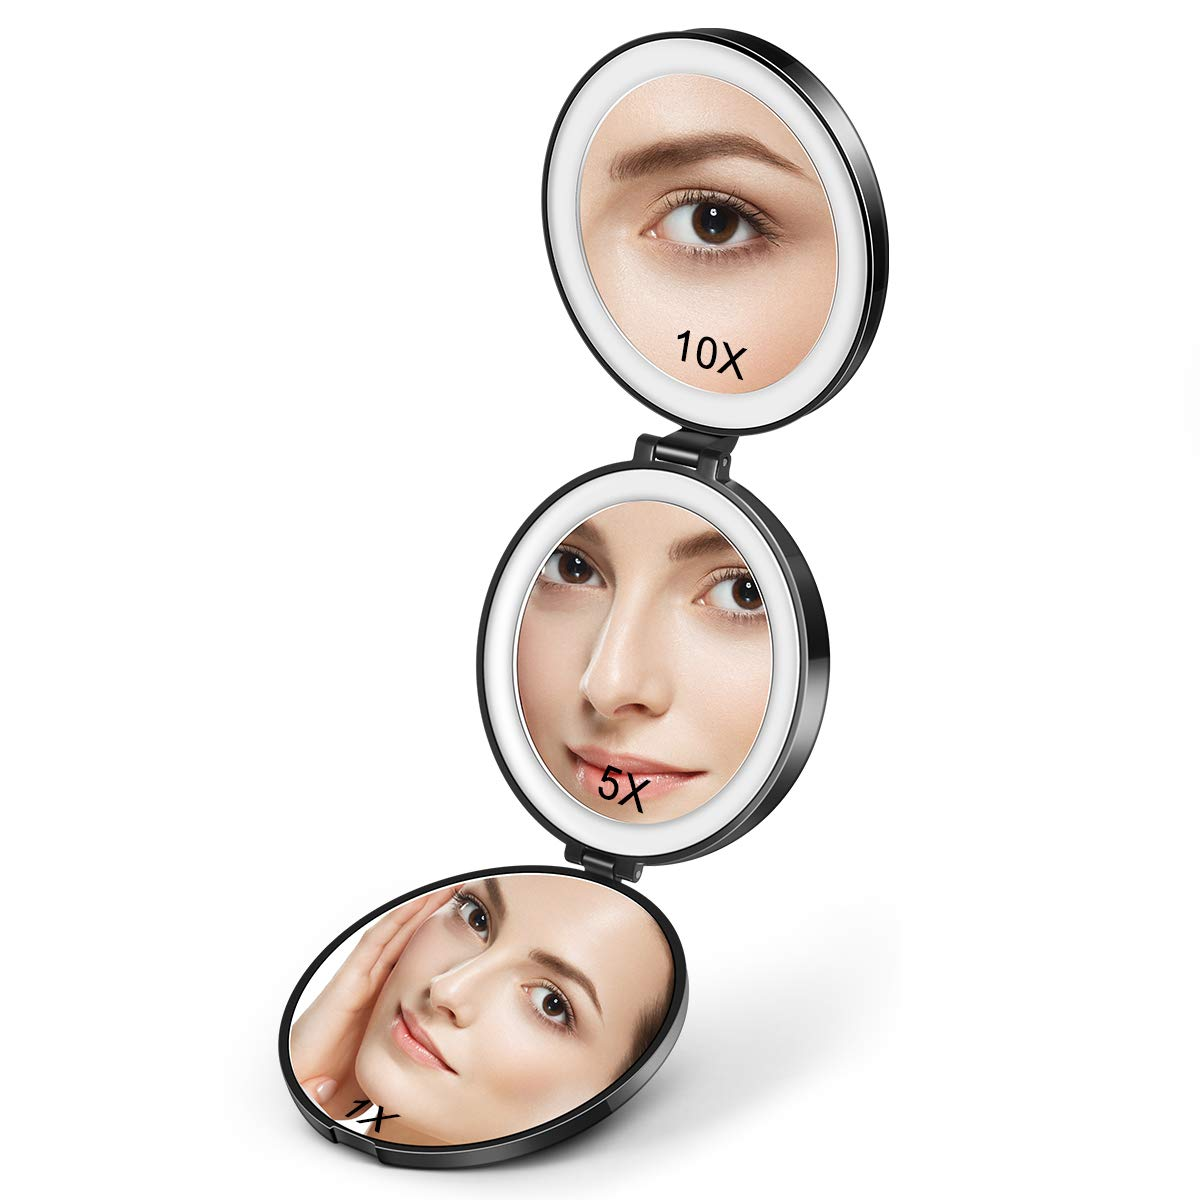 Magnifying Cosmetic Mirror with Light, 1X/5X/10X Led Lighted Travel Compact Makeup Mirror Folding Portable